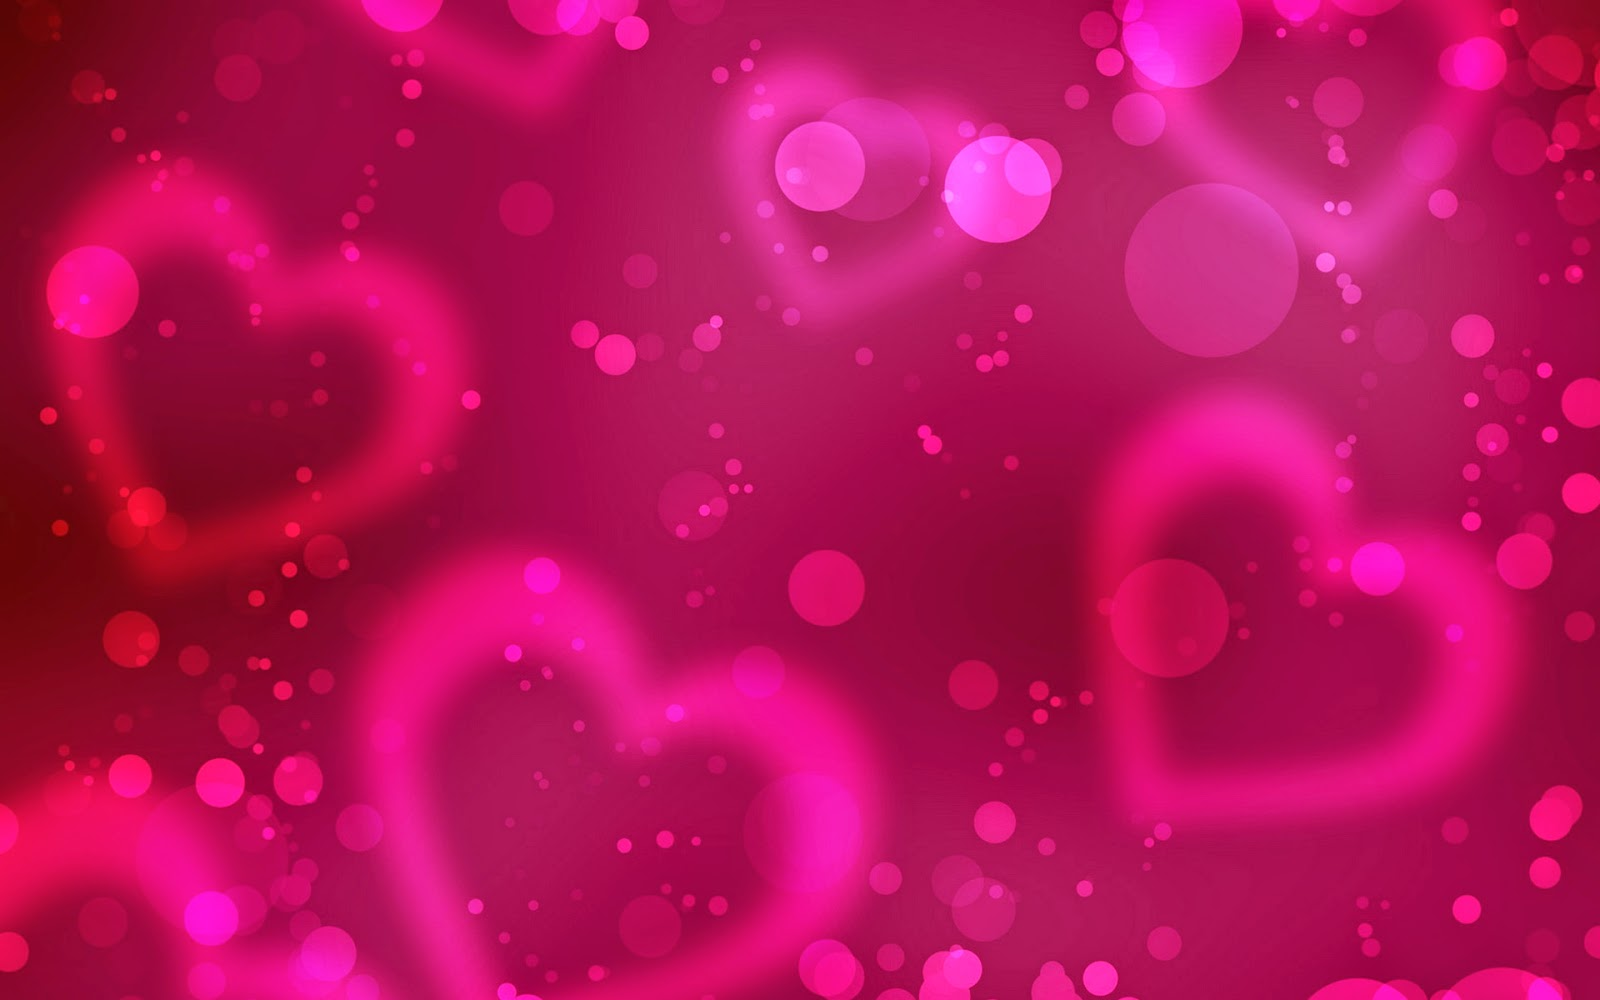 Love Heart Design Wallpaper : Romantic Love Heart Designs HD cover Wallpaper